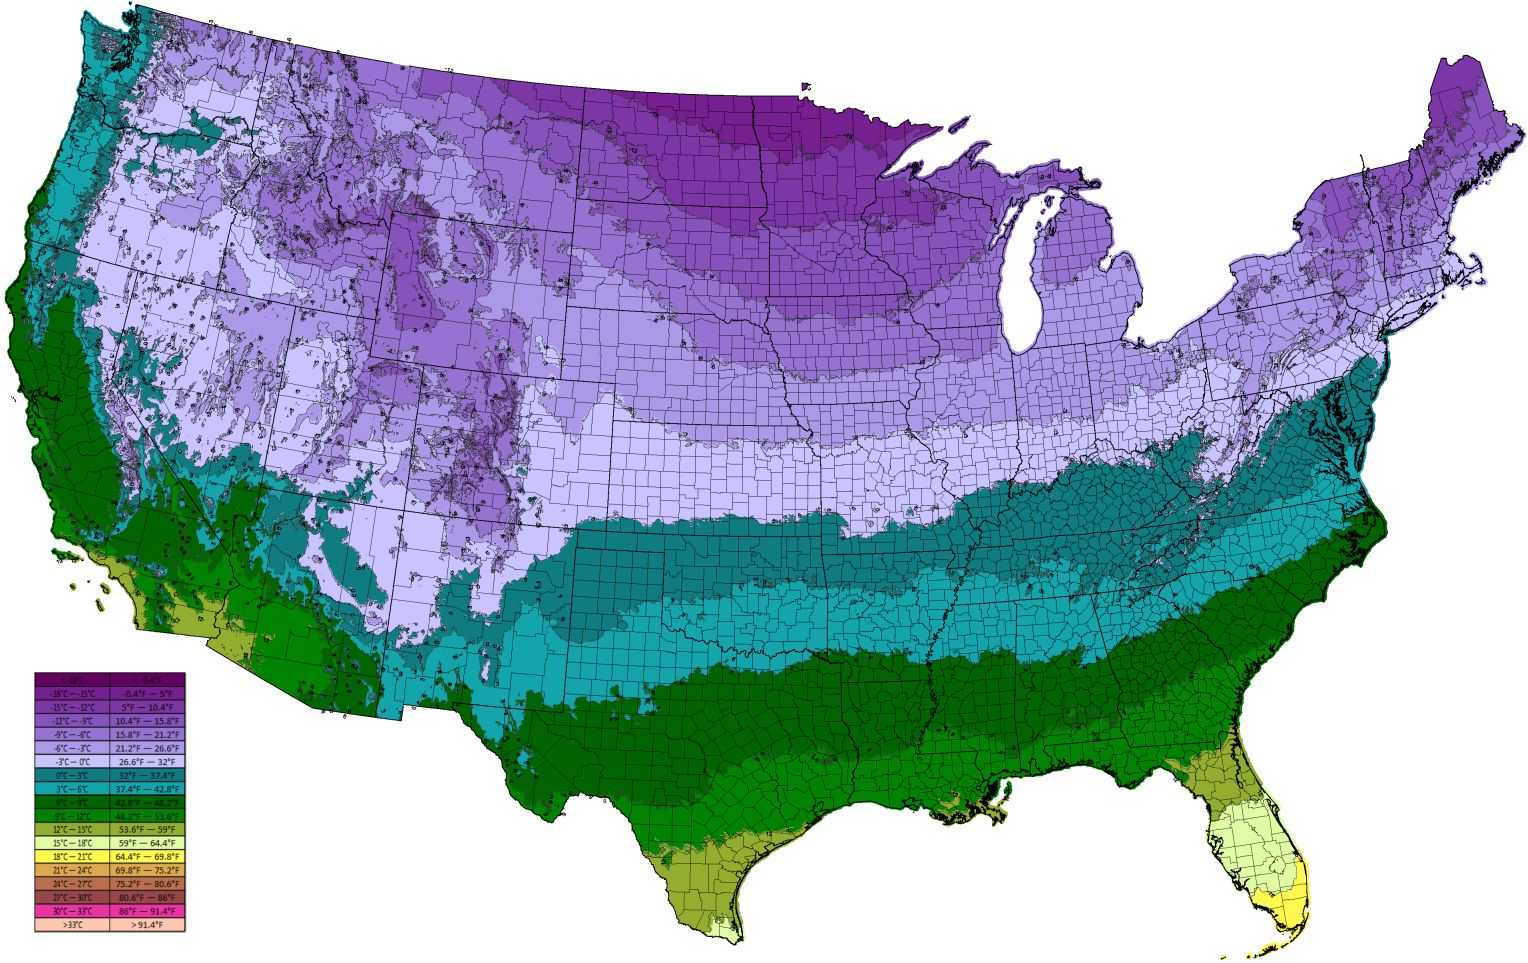 average_winter_temperatures_united_states_map Winter Temperatures In Us Map on old climate map, winter in the united states, january temperature map, world zone climate regions map, weather map, winter temperatures across united states, average temperature by state map, winter precipitation map us, average winter temperature map, winter climate map, winter temperatures of water in us, winter weather forecast 2014-15, winter temperature map united states,